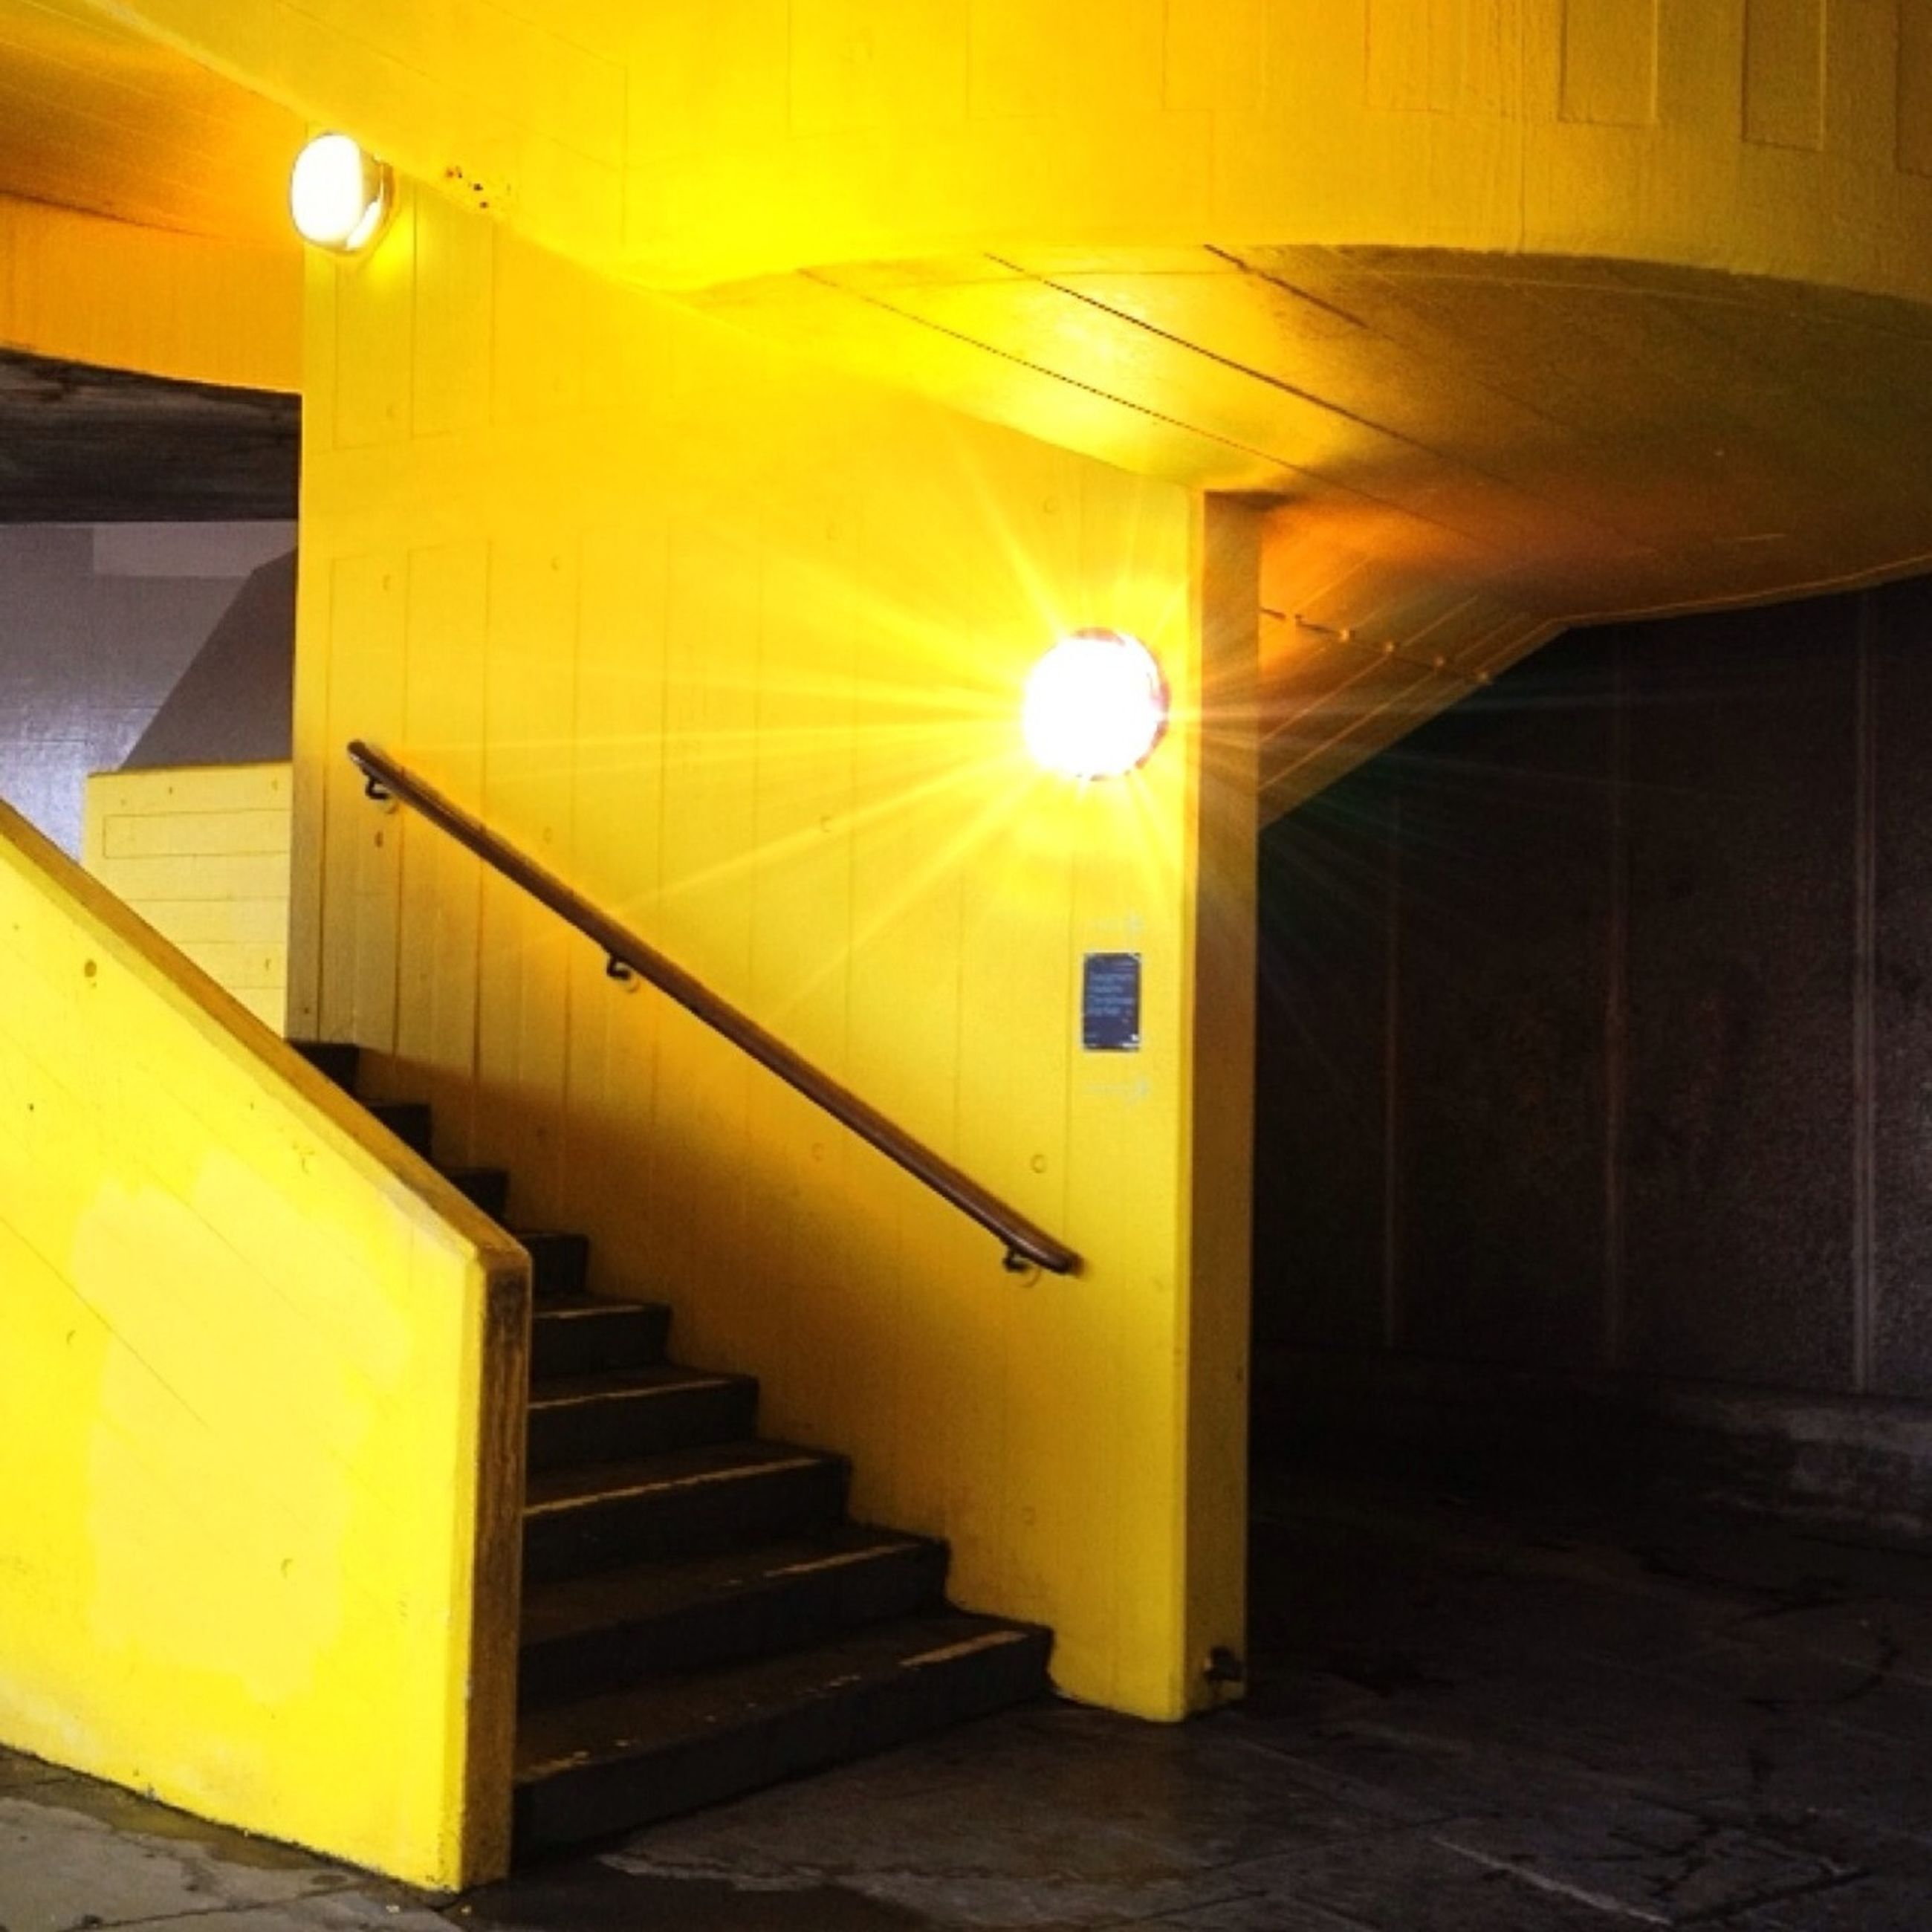 indoors, illuminated, steps and staircases, steps, staircase, yellow, built structure, architecture, lighting equipment, railing, ceiling, wall - building feature, escalator, absence, empty, modern, convenience, subway station, public transportation, no people